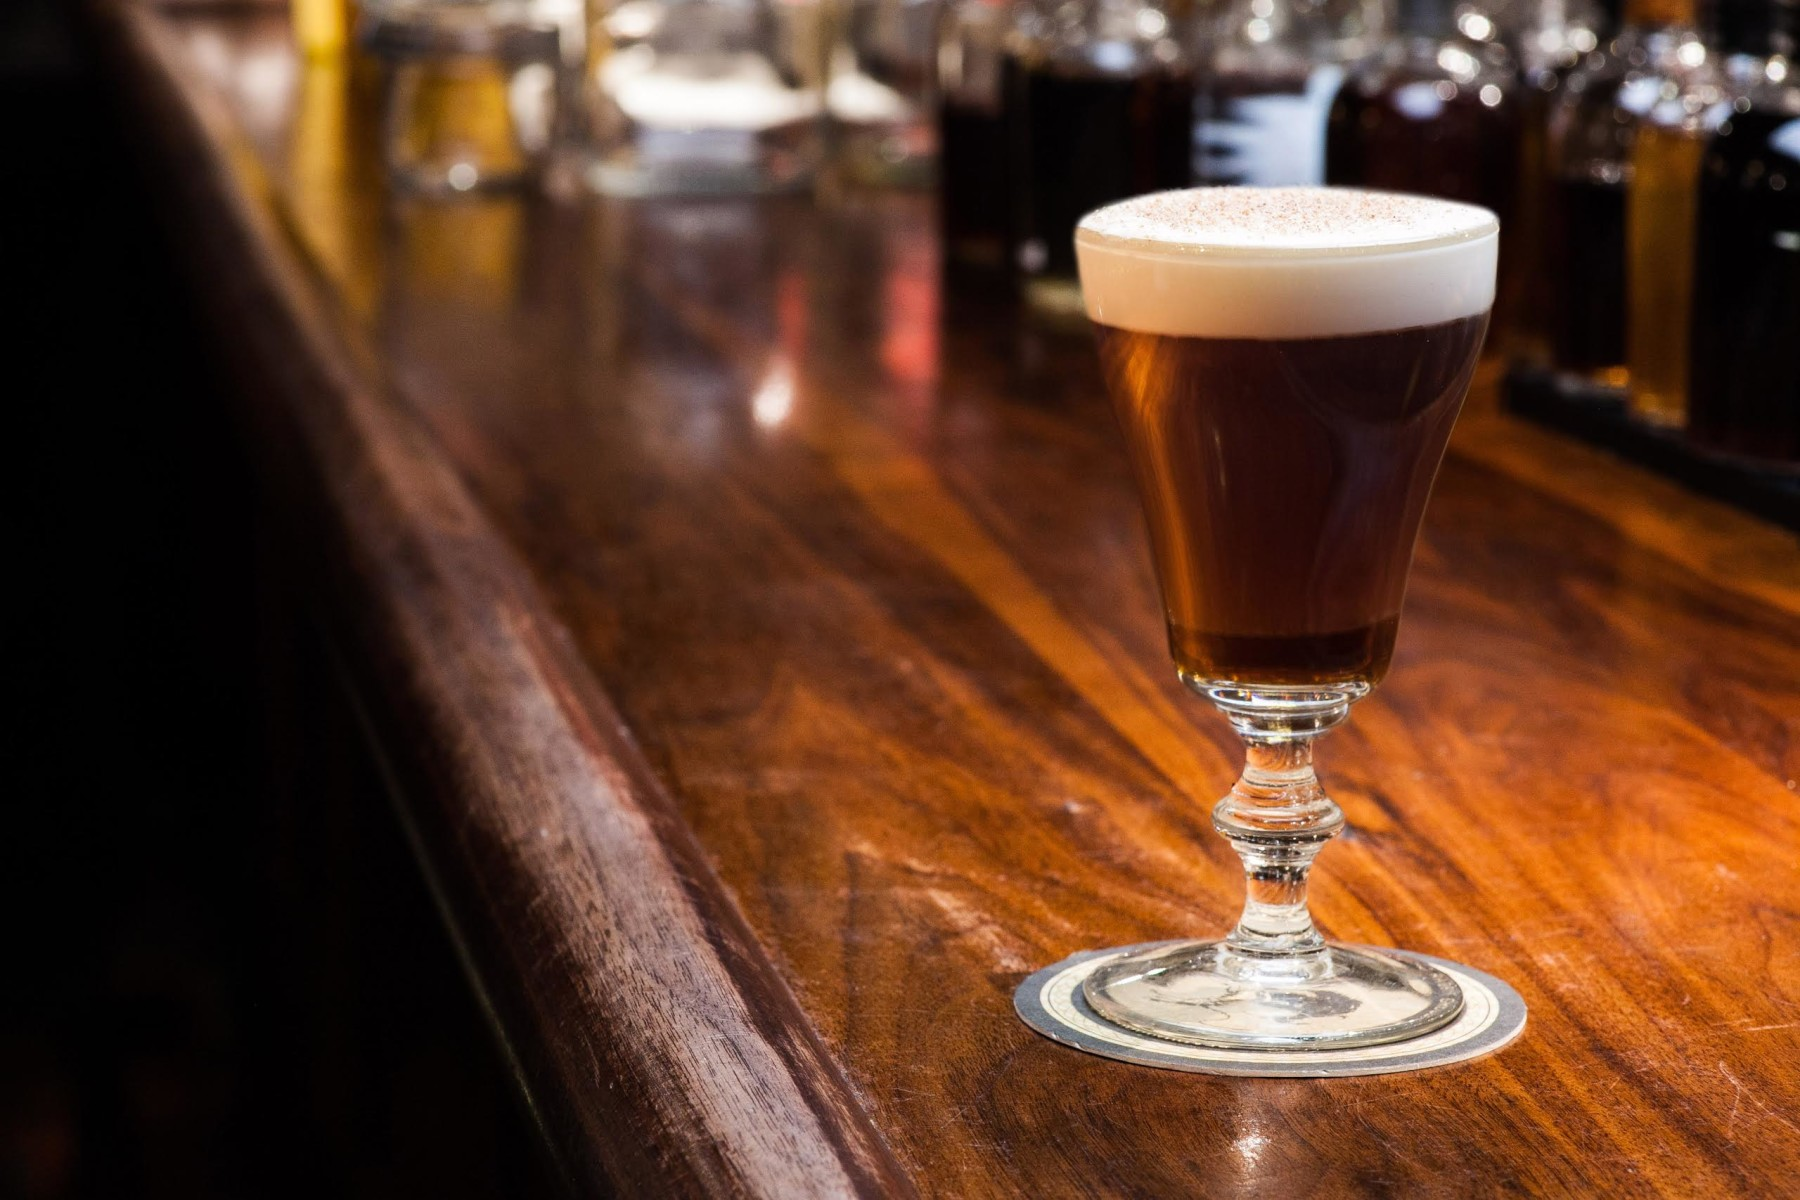 Dead Rabbit New York City's Irish Coffee, which made it World's Best Bar 2016 — the bar is popping up in London for London Cocktail Week 2018